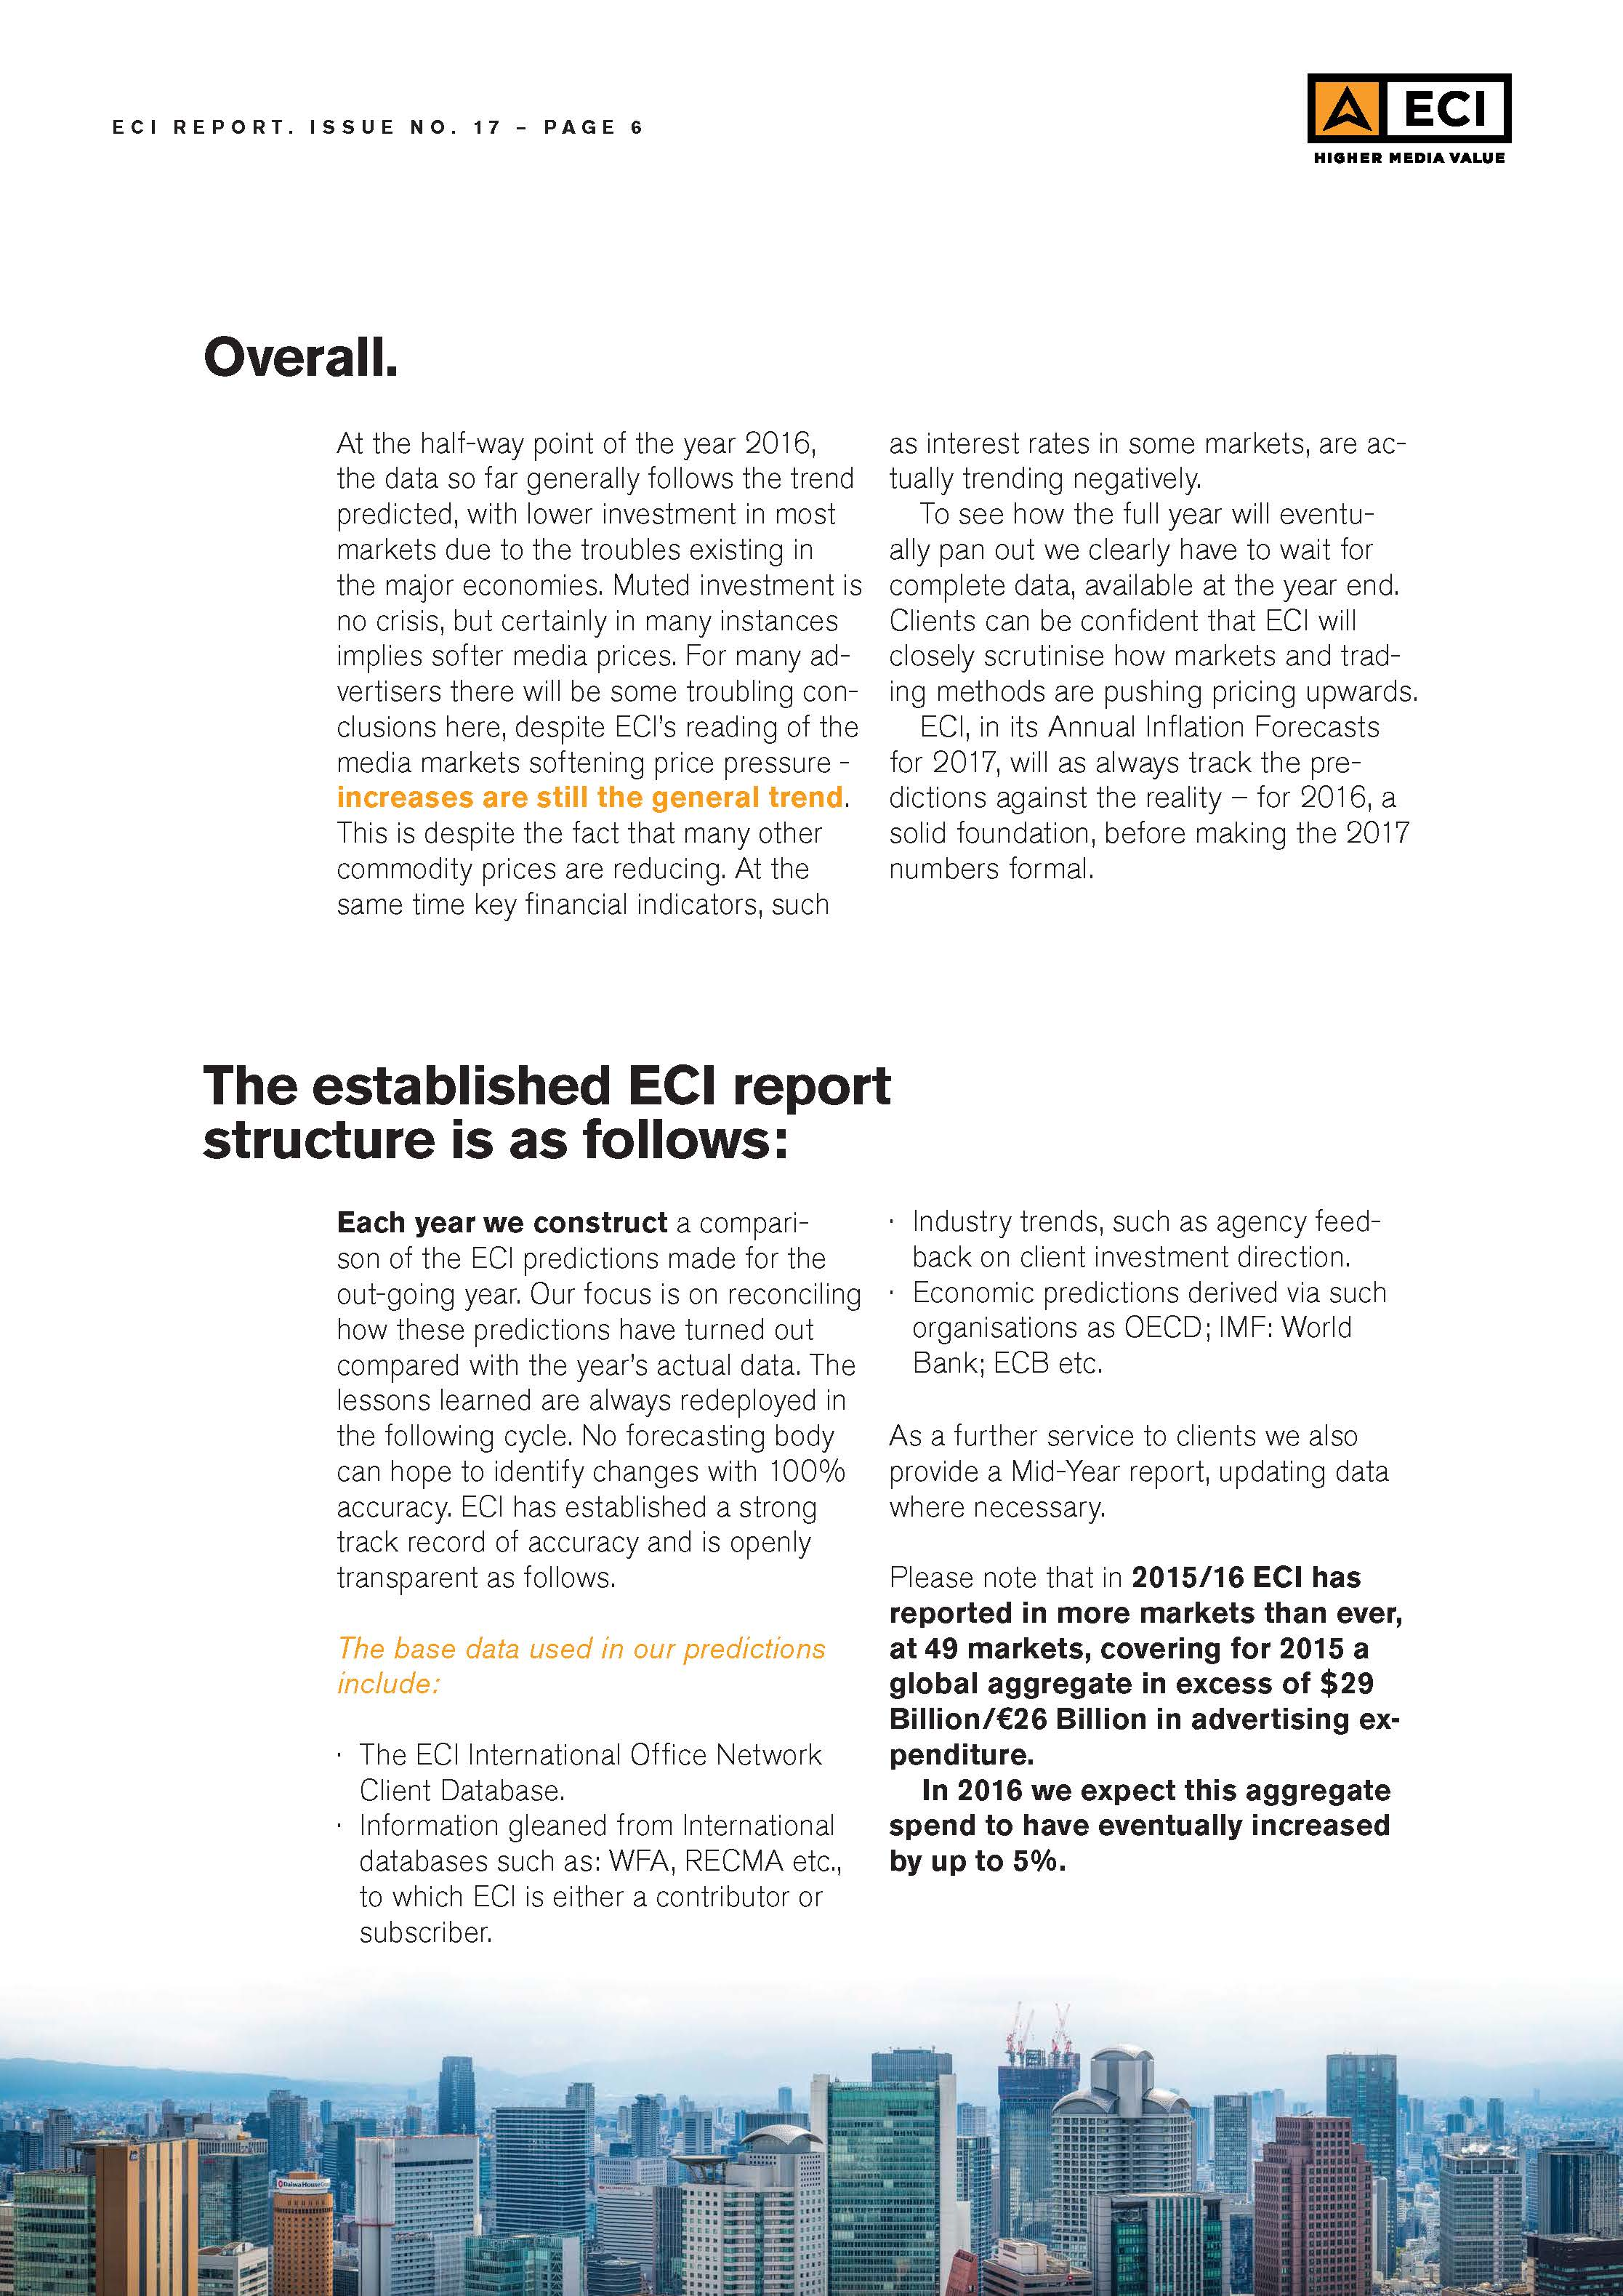 eci_report_issue-17_sept_2016_6